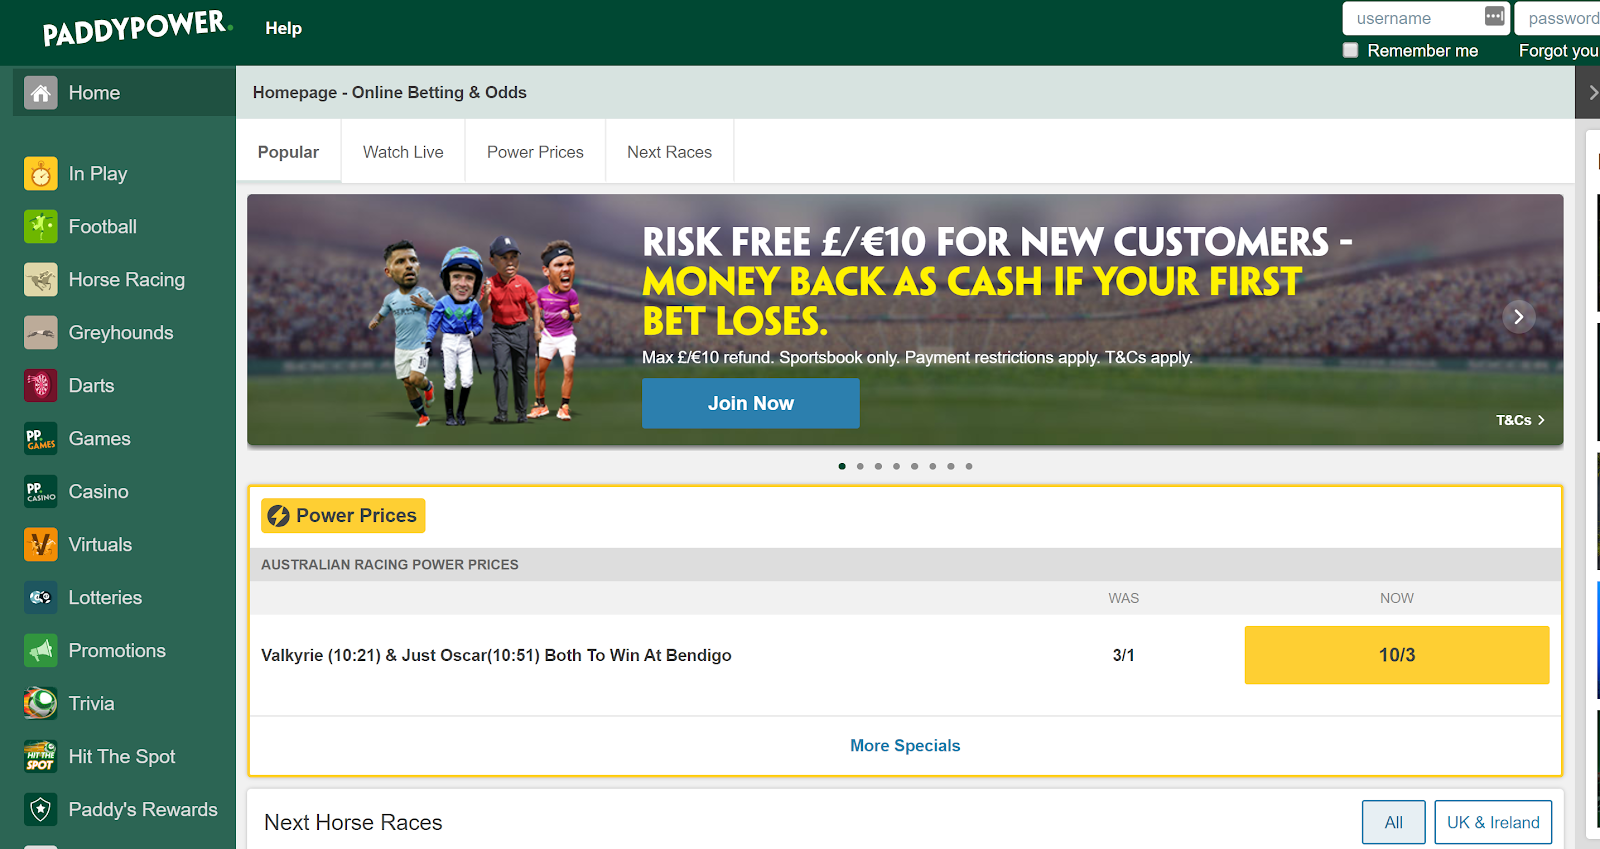 Paddy Power has one of the best betting apps